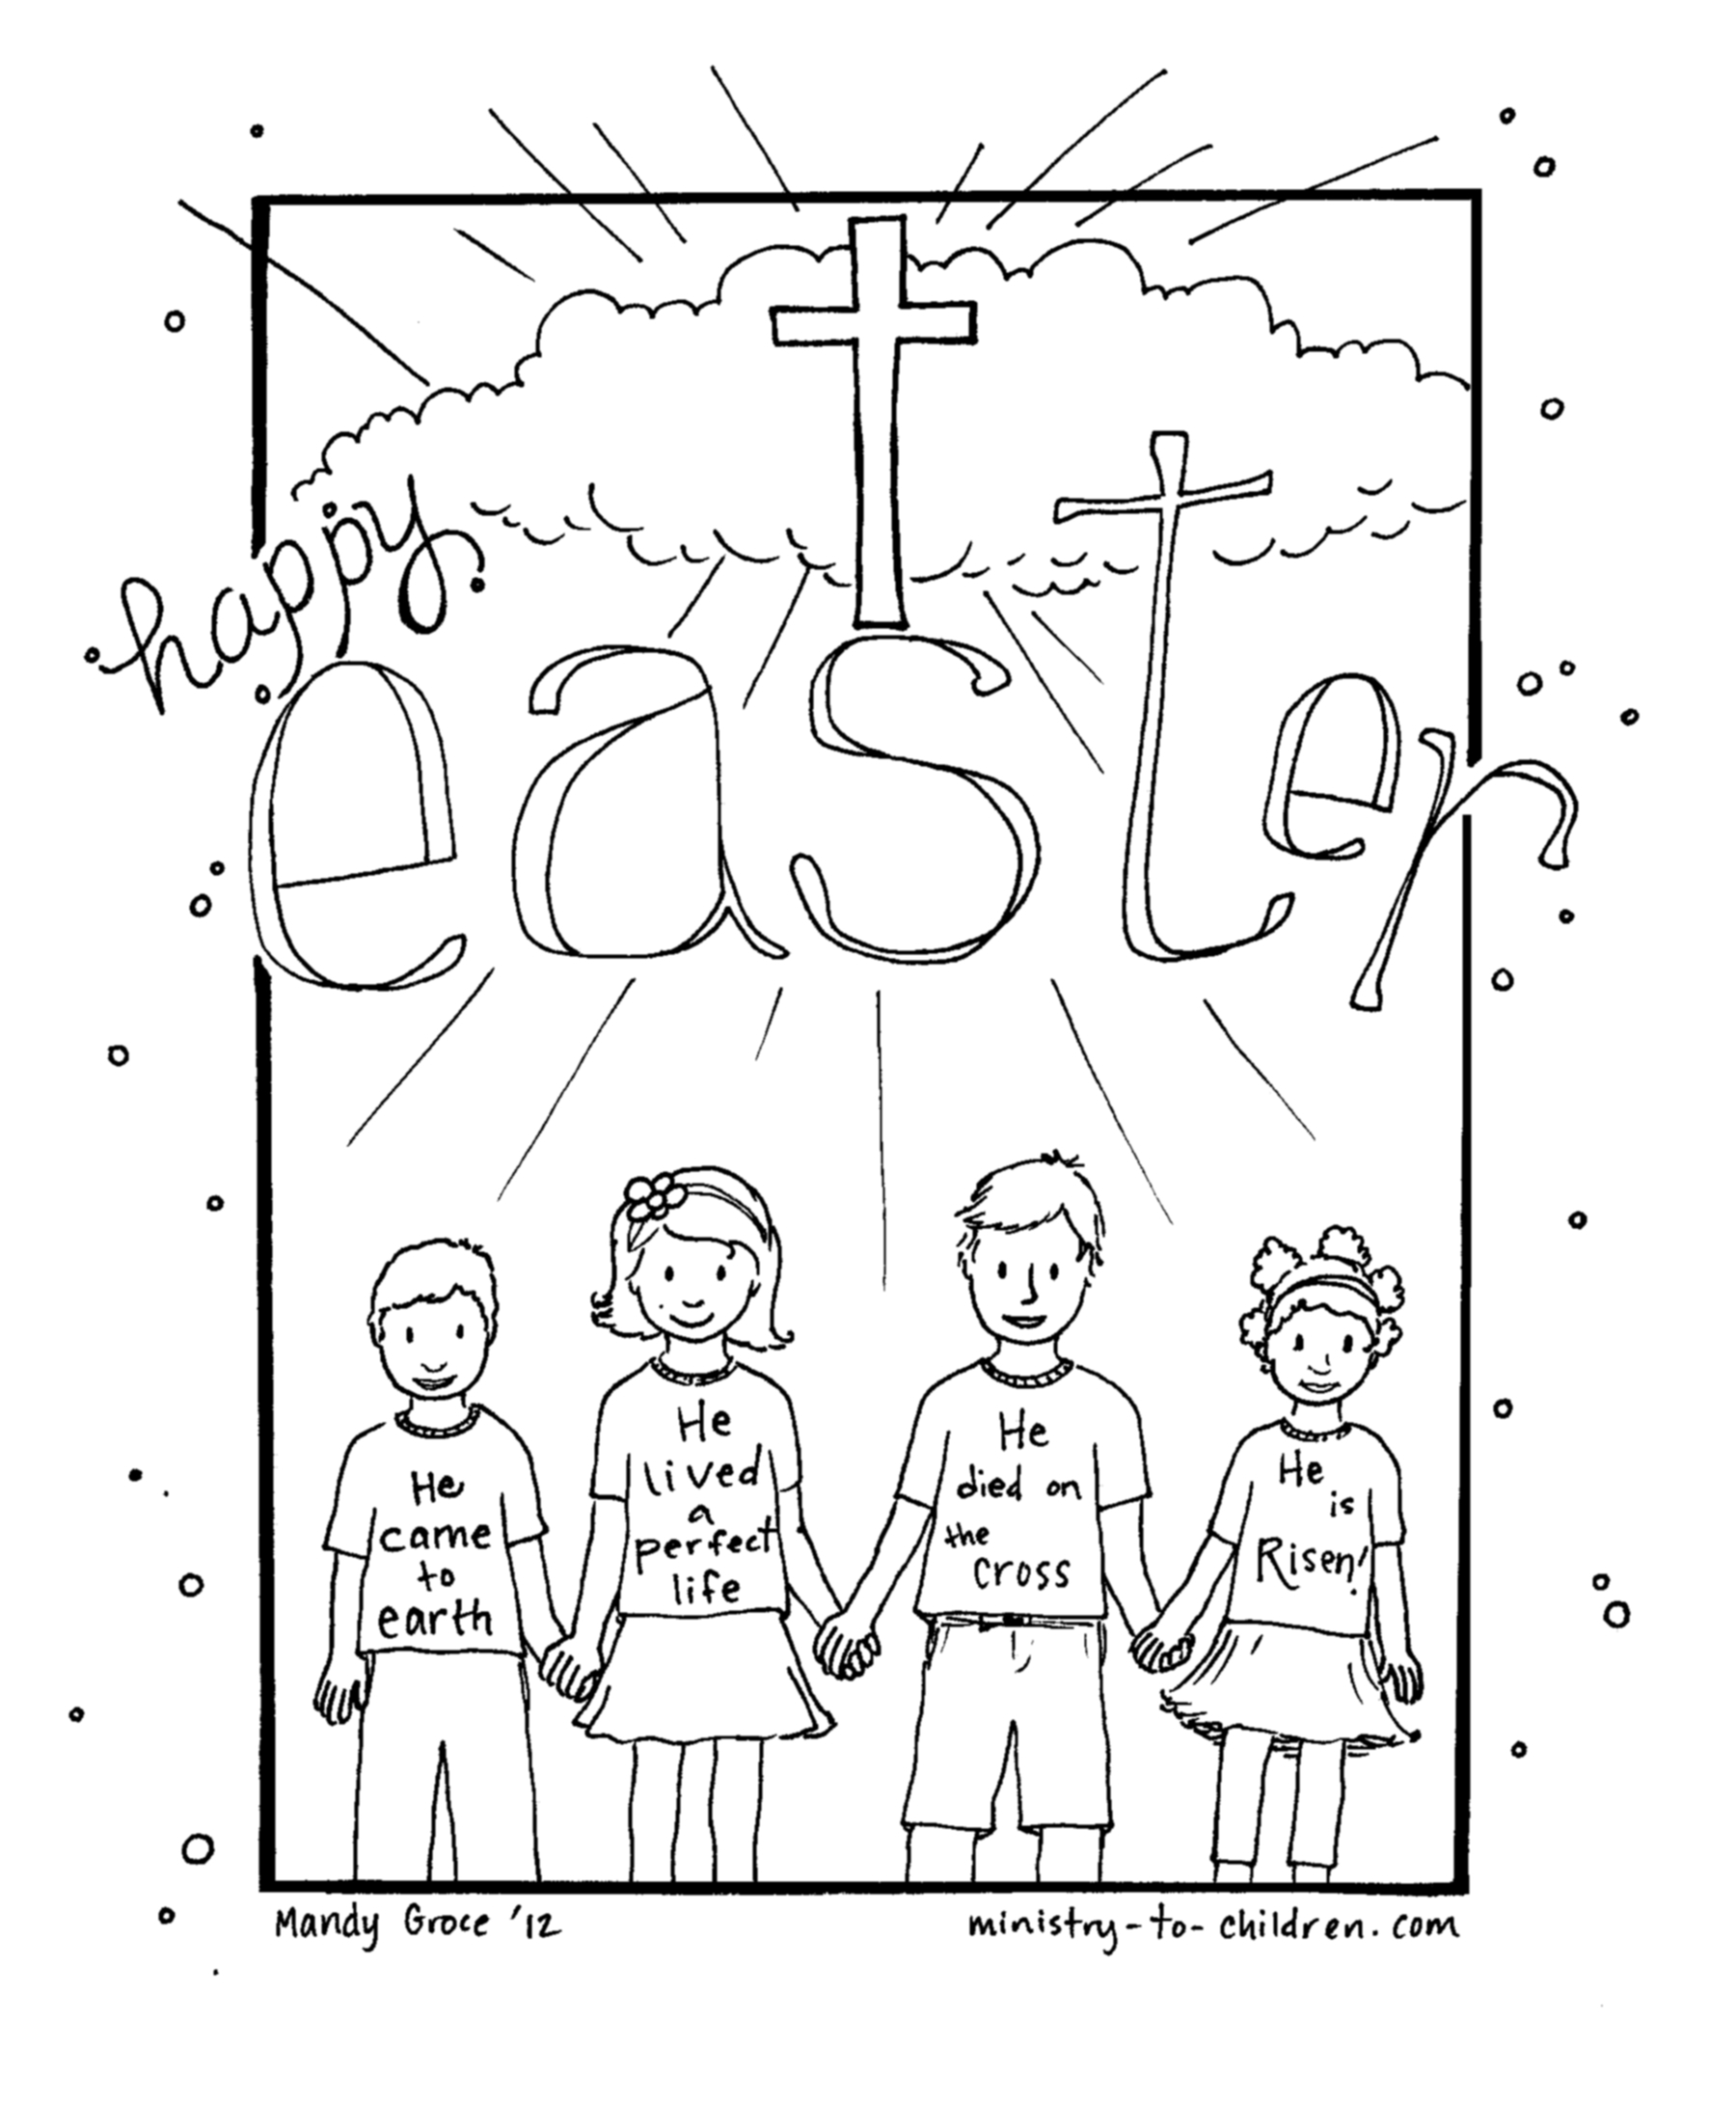 Printable Catholic Easter Coloring Pages Print Printable Catholic Download Of Easter Coloring Pages for Kids Crazy Little Projects Printable